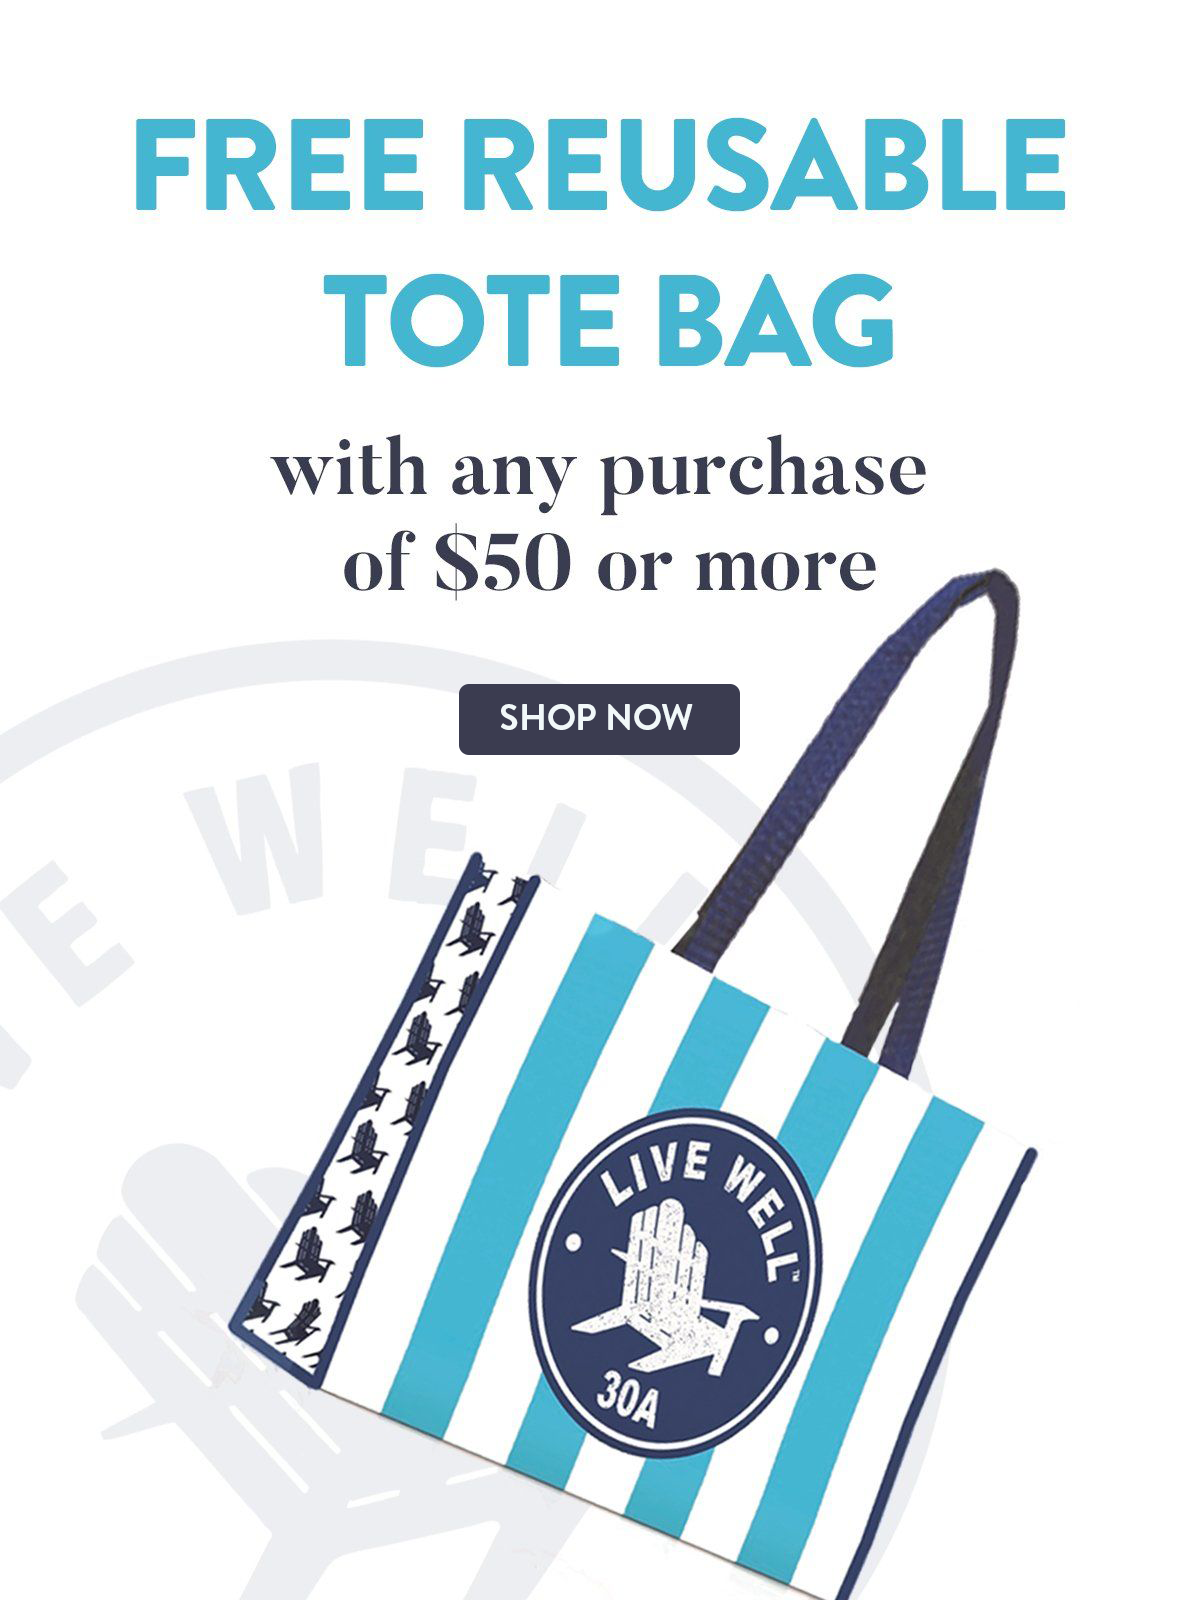 Free Reusable Toe Bag with any purchase of $50 or more